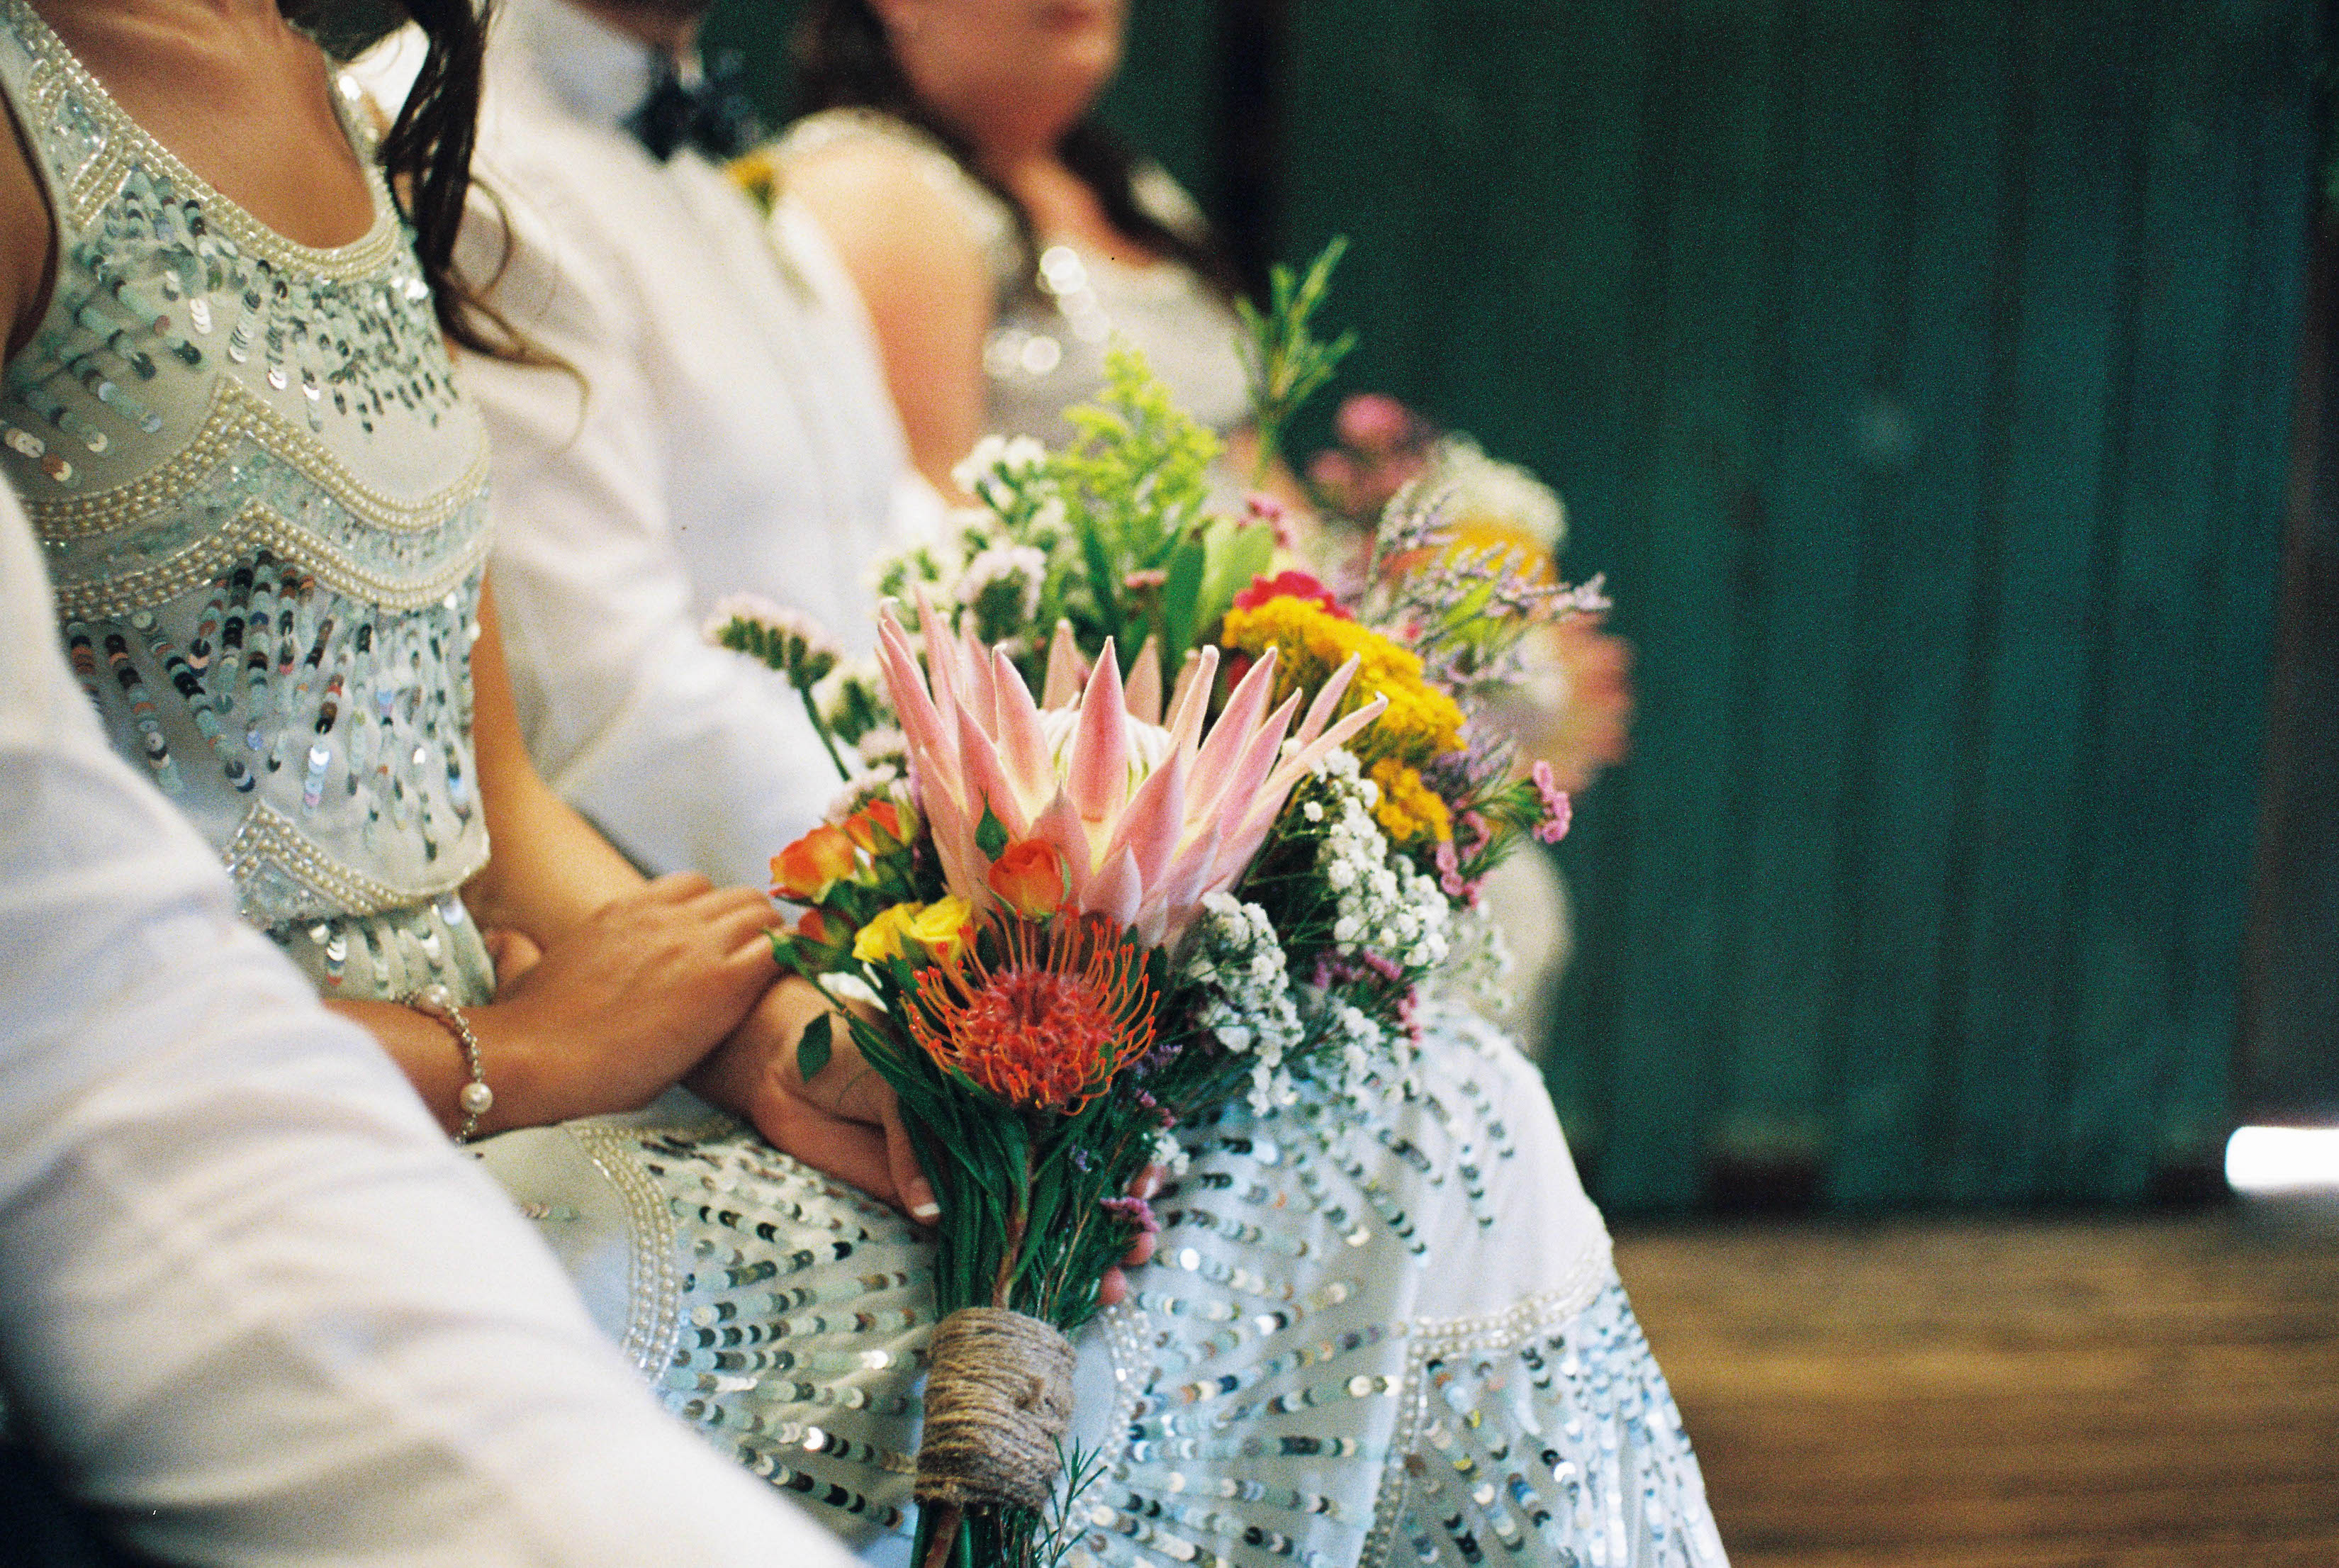 A detail photo of the bridesmaids Australian Native bouquets, taken by Australian Wedding Photographer, Rhianna May